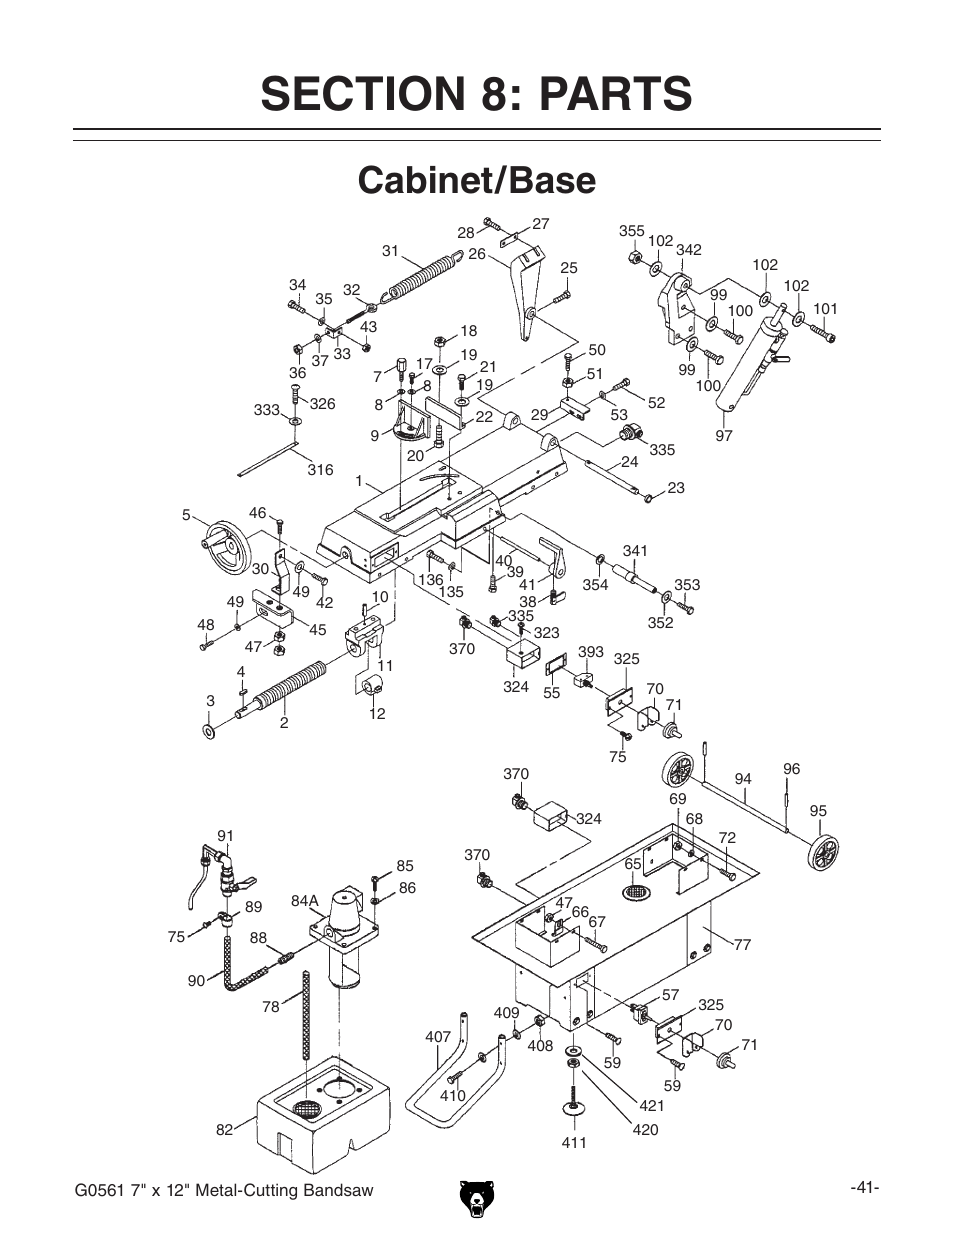 2003 Saab 93 Wiring Diagram Wiring Diagrams Library